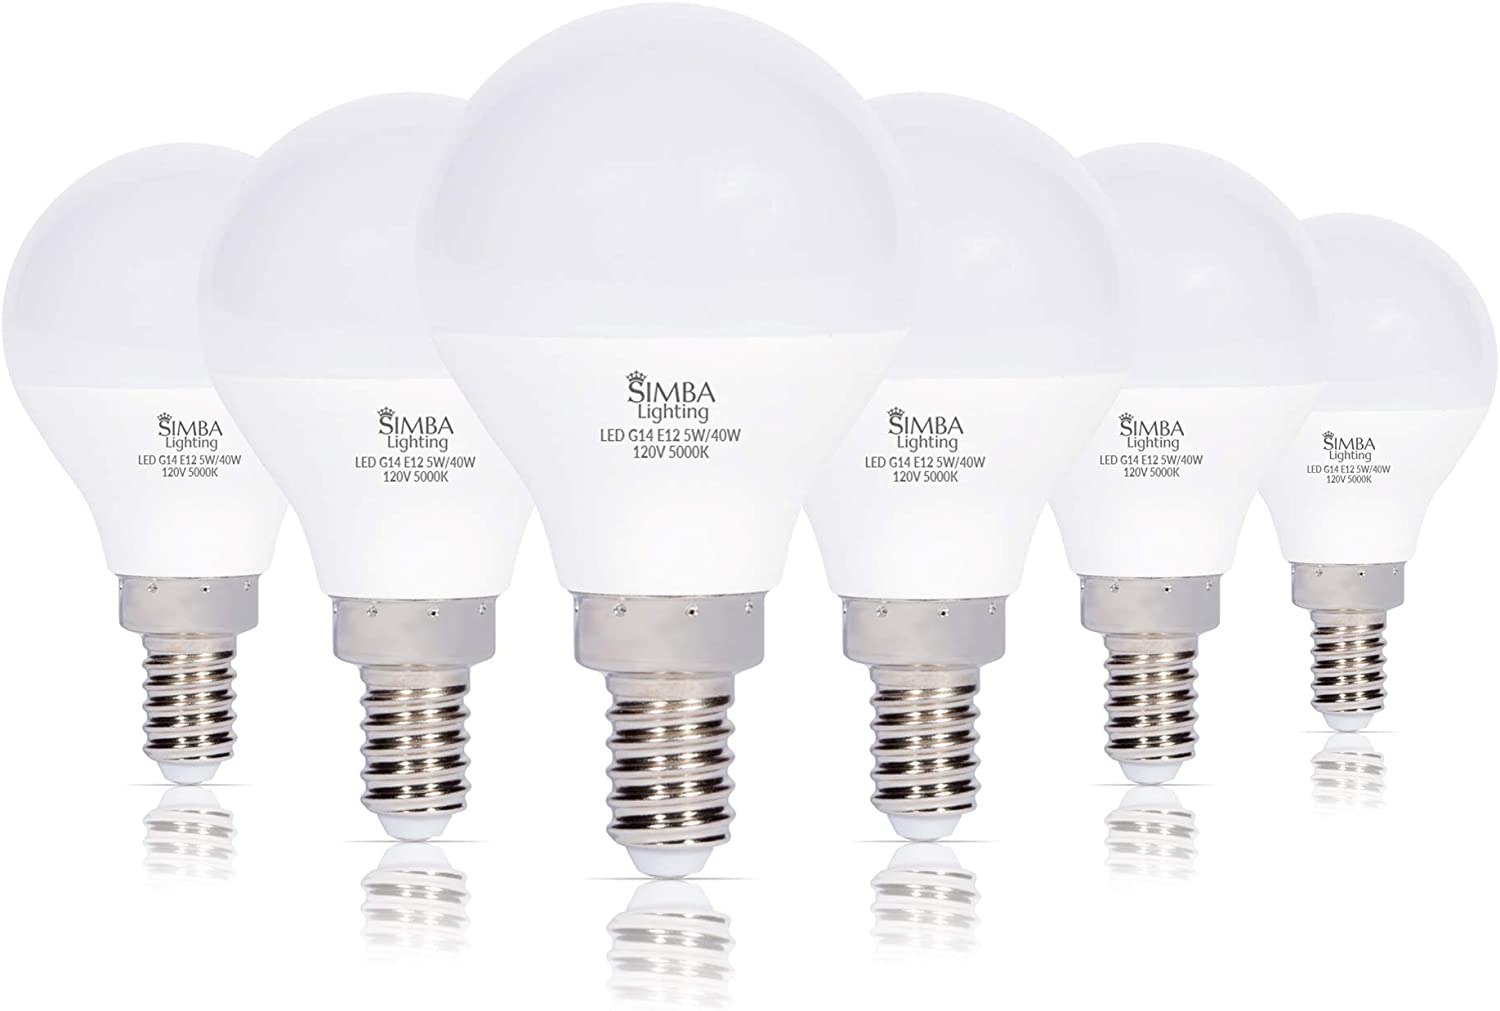 Simba Lighting LED Candelabra E12 Base G14 Small Globe 5 Watt 40W Replacement Light Bulb (6 Pack) for Ceiling Fan, Chandelier, Vanity, Round A15 Frosted White Cover, Non-Dimmable, 5000K Daylight